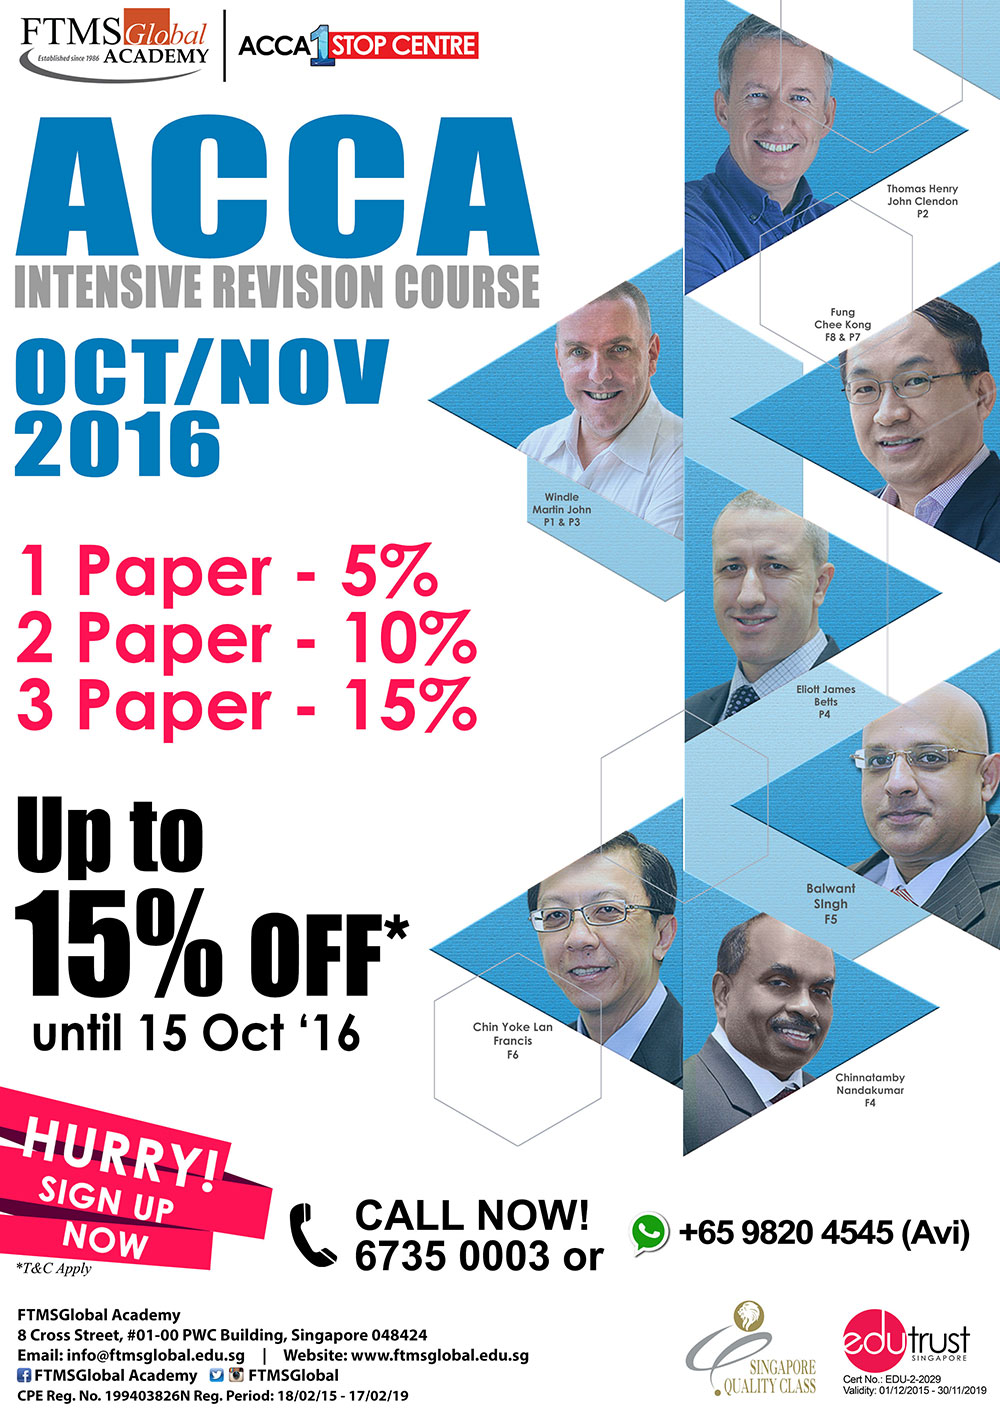 P2 acca paper